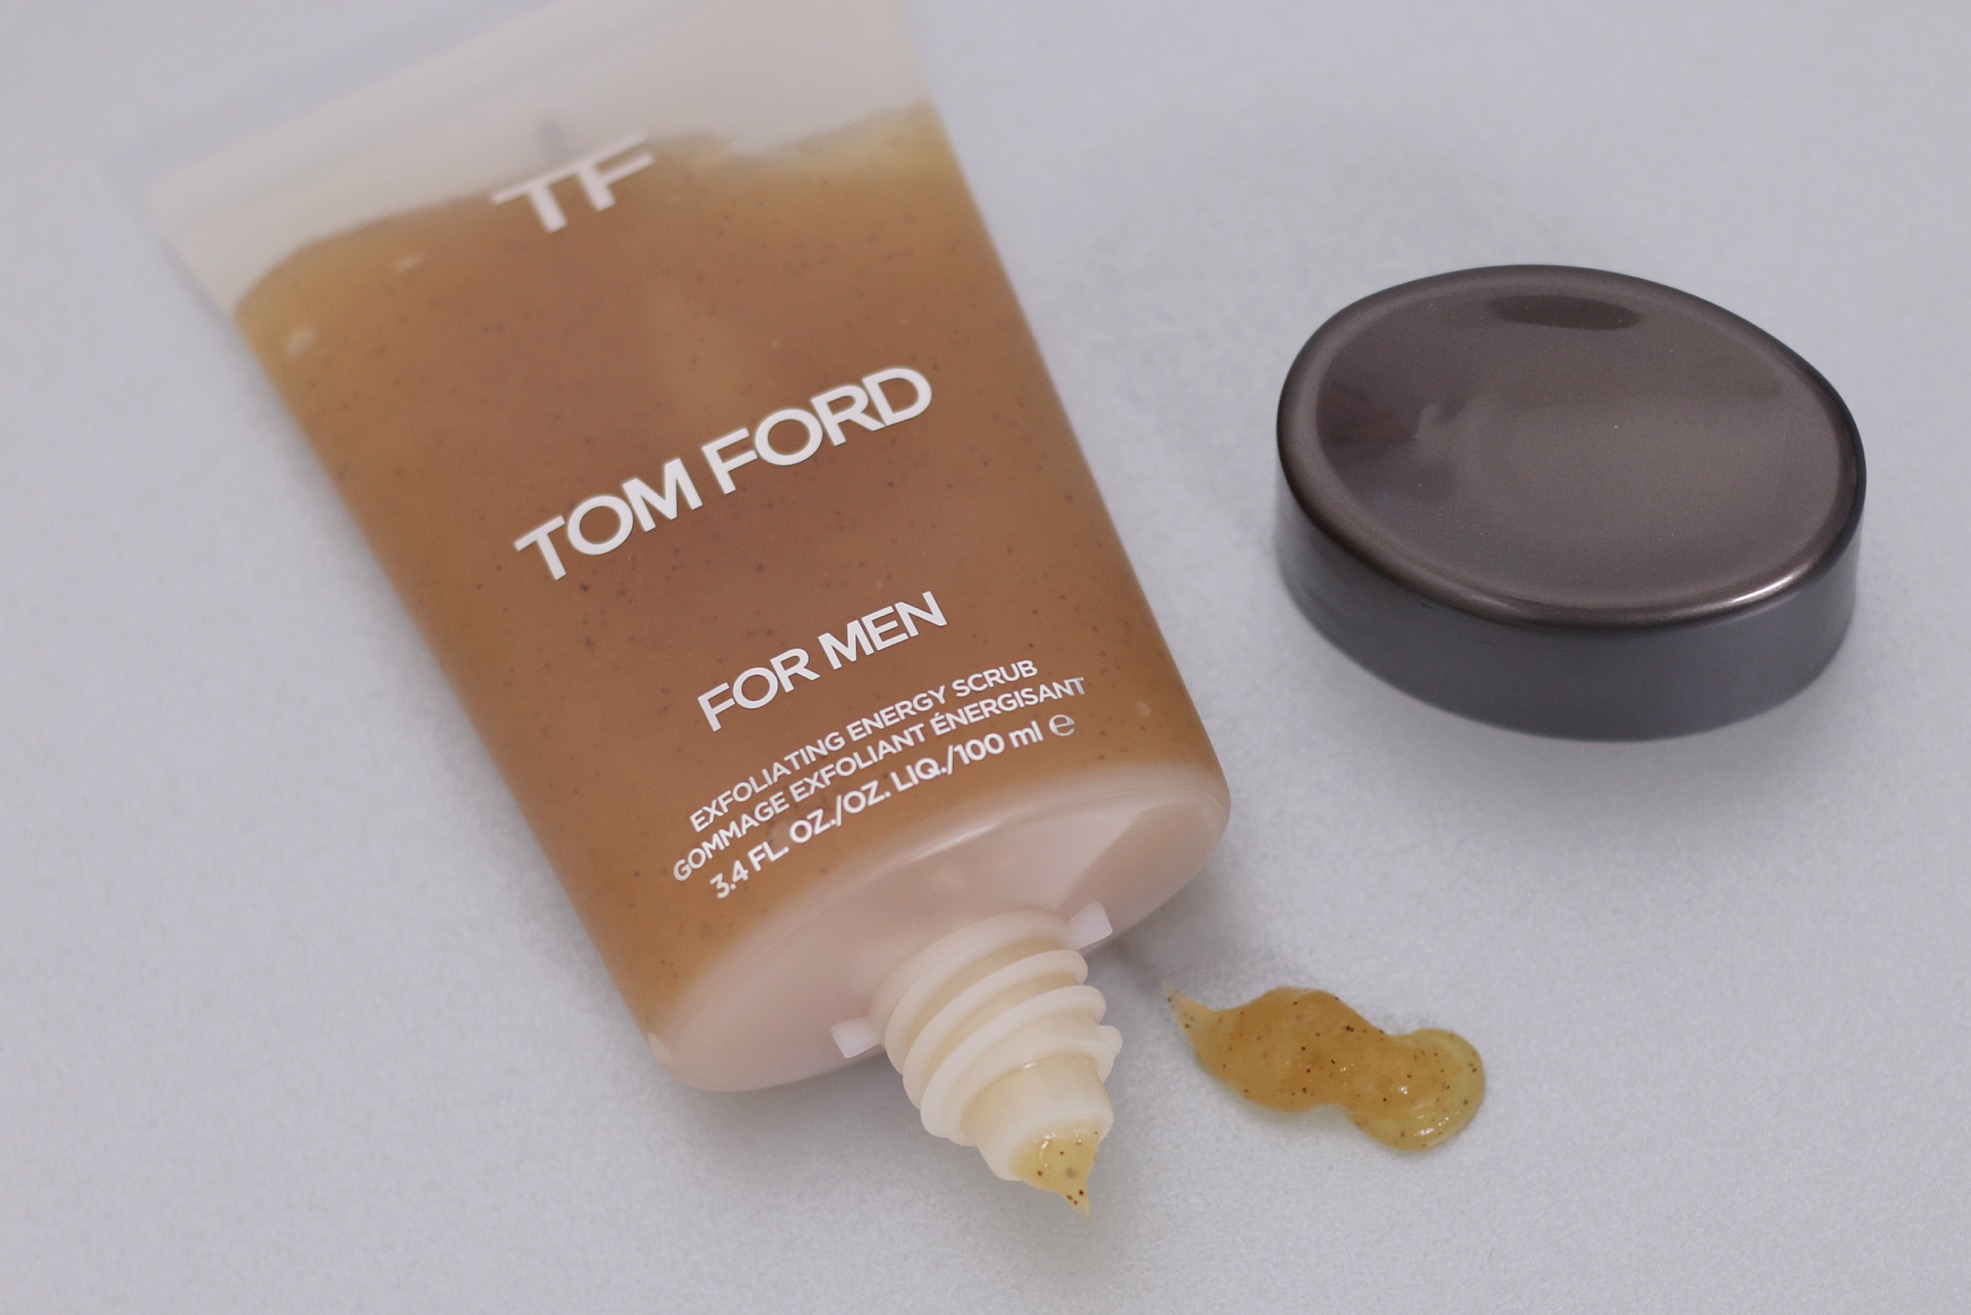 tom-ford-for-men-grooming-exfoliator-review-man-for-himself